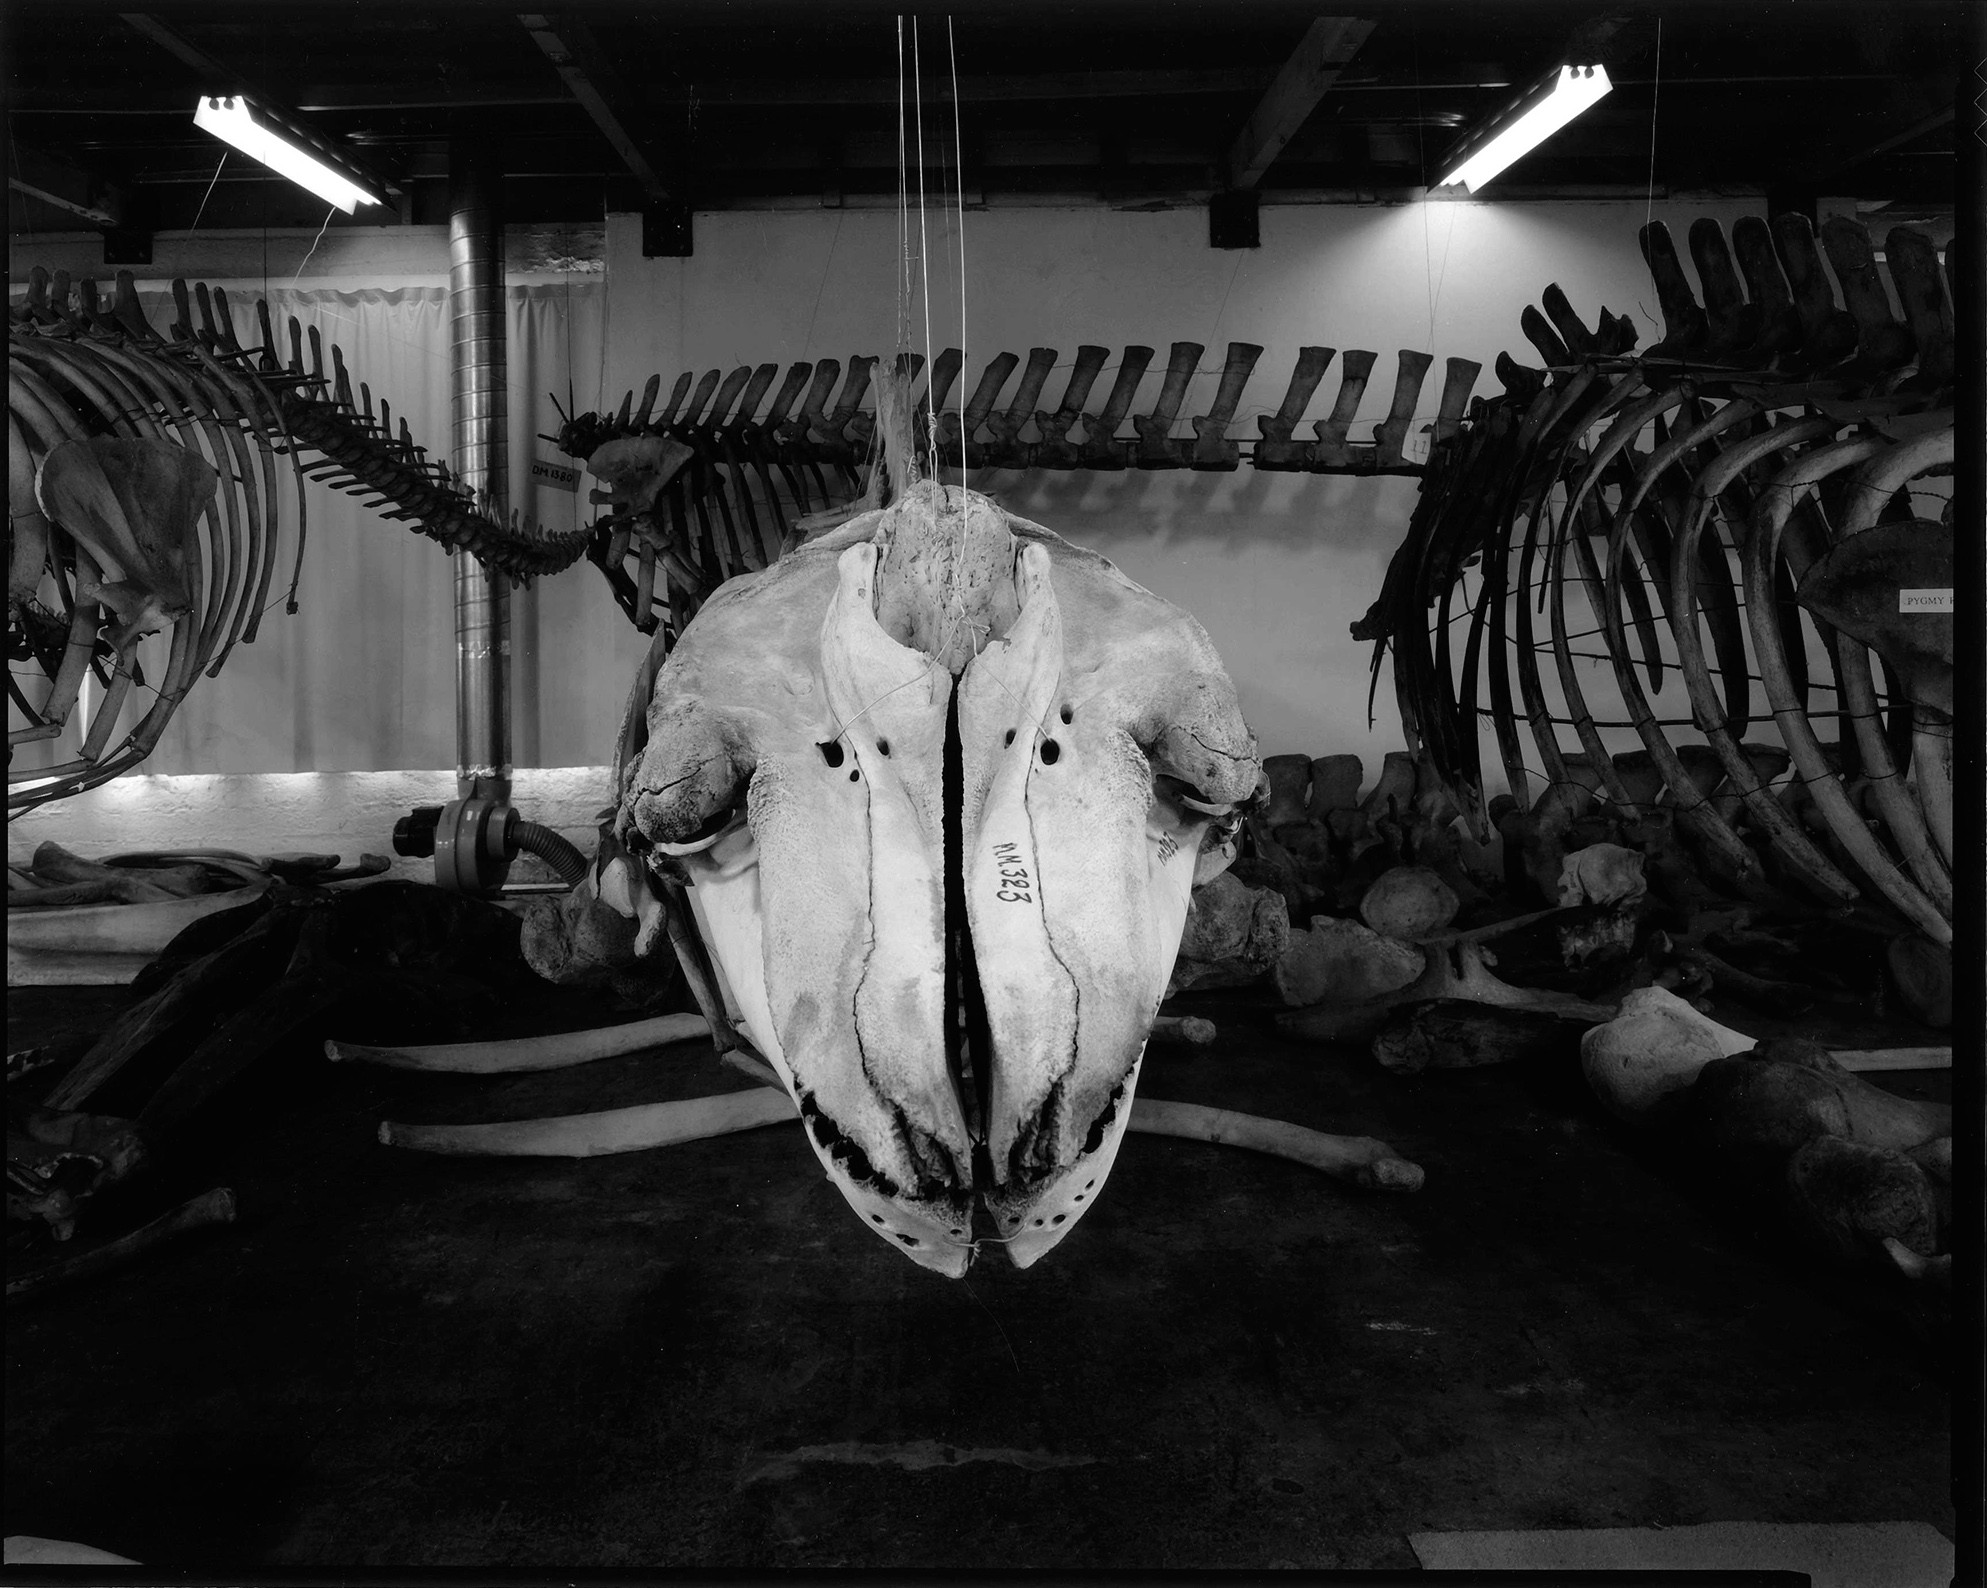 Orca Skull, Taranaki St, Wellington 4 October 1995.